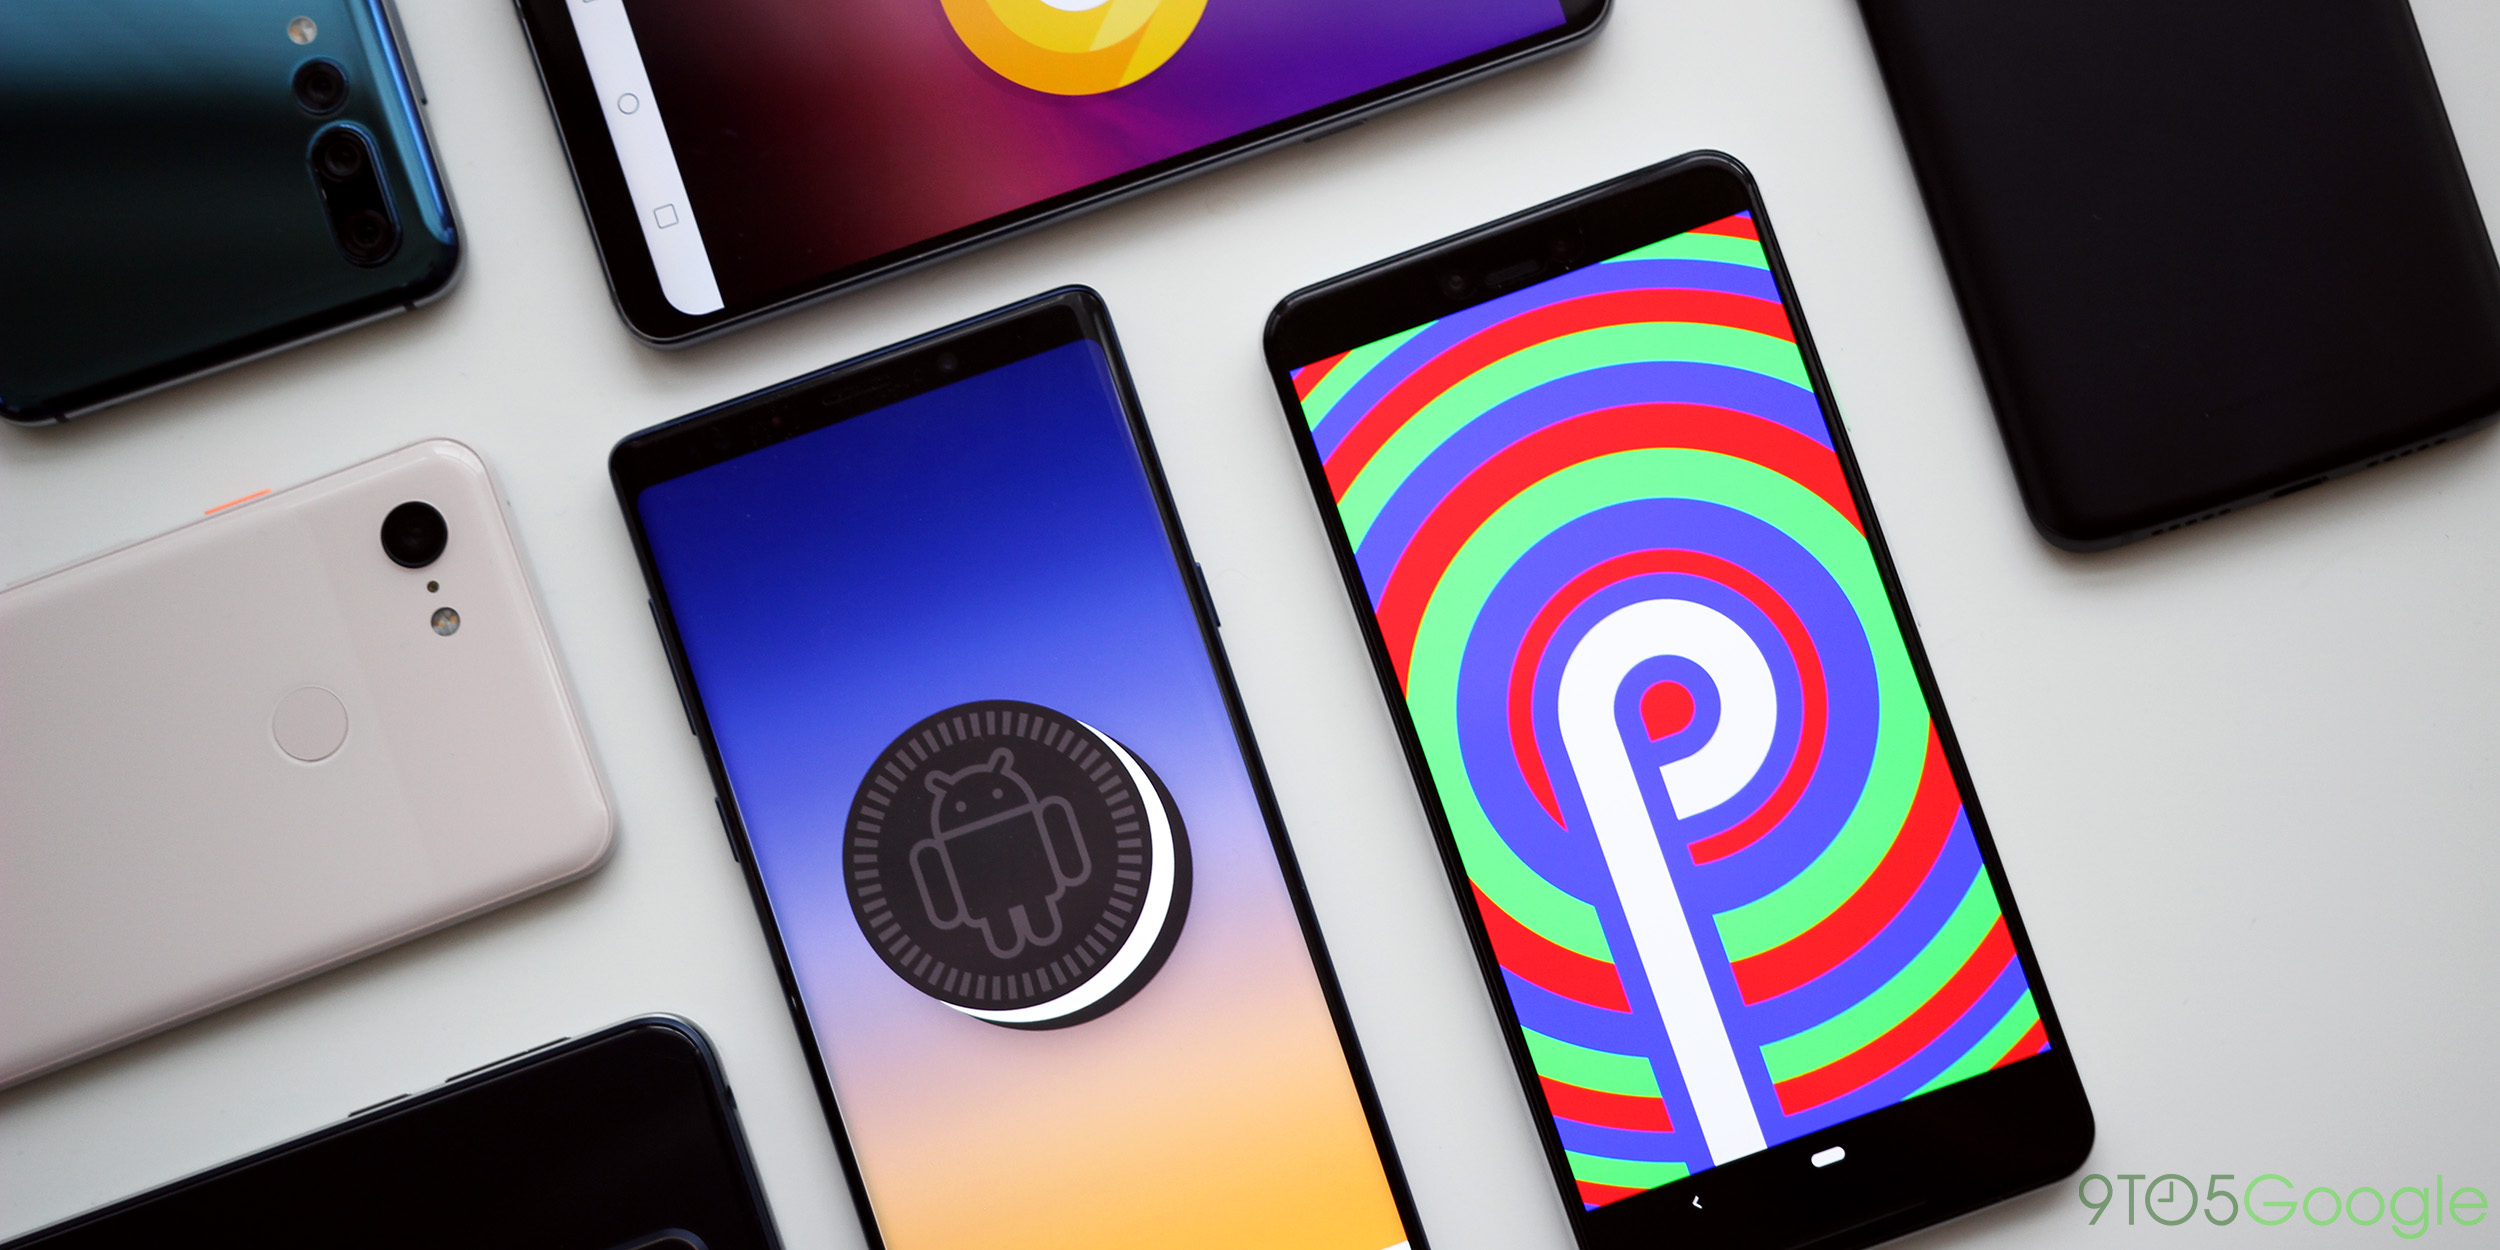 Google: Android Pie to hit more devices in 2018 vs Oreo